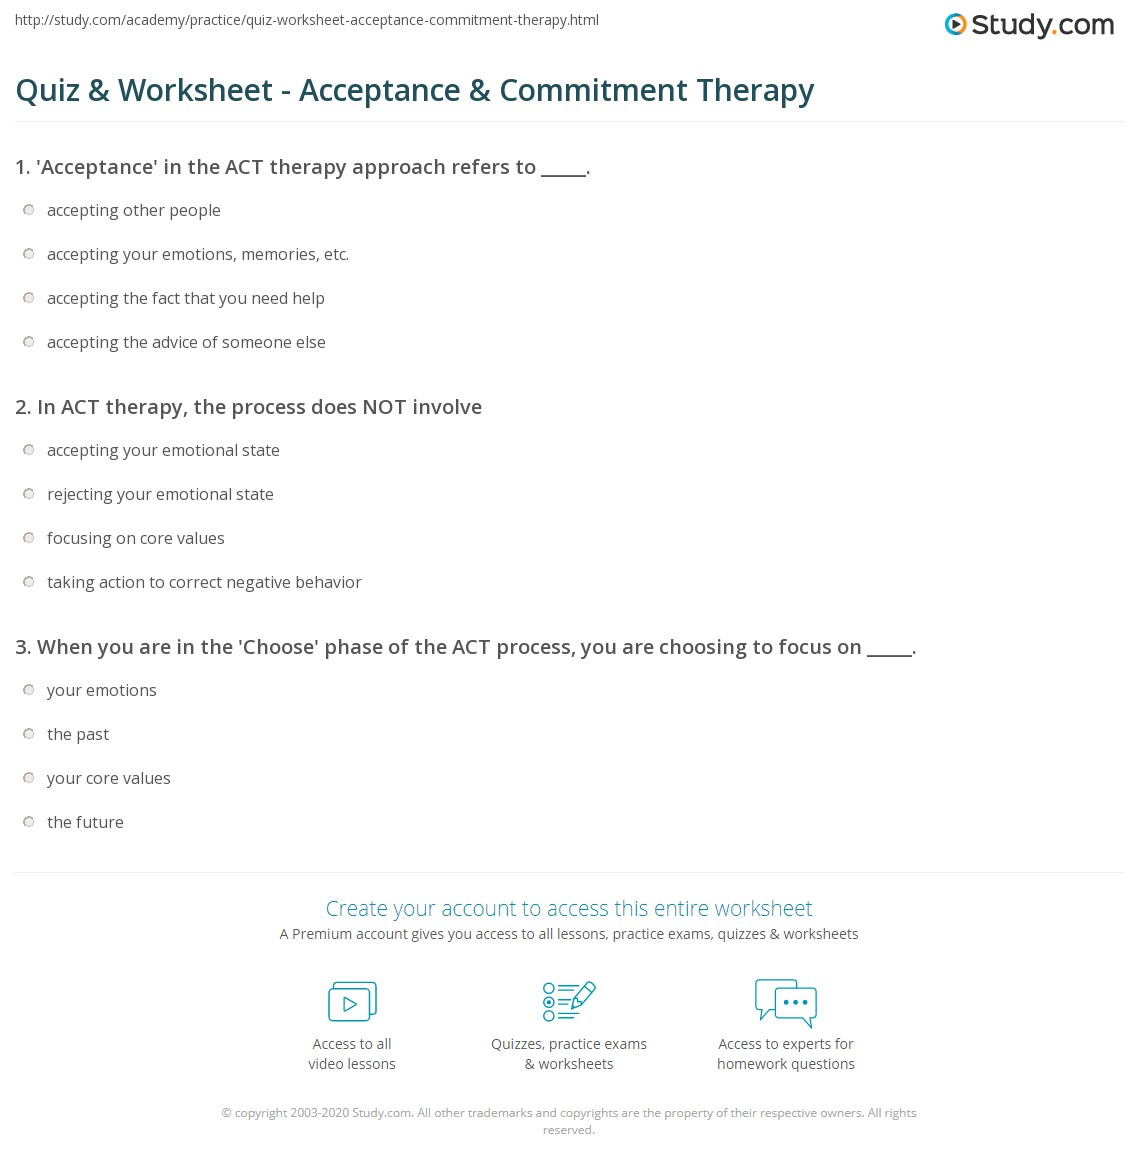 Quiz & Worksheet - Acceptance & Commitment Therapy | Study.com